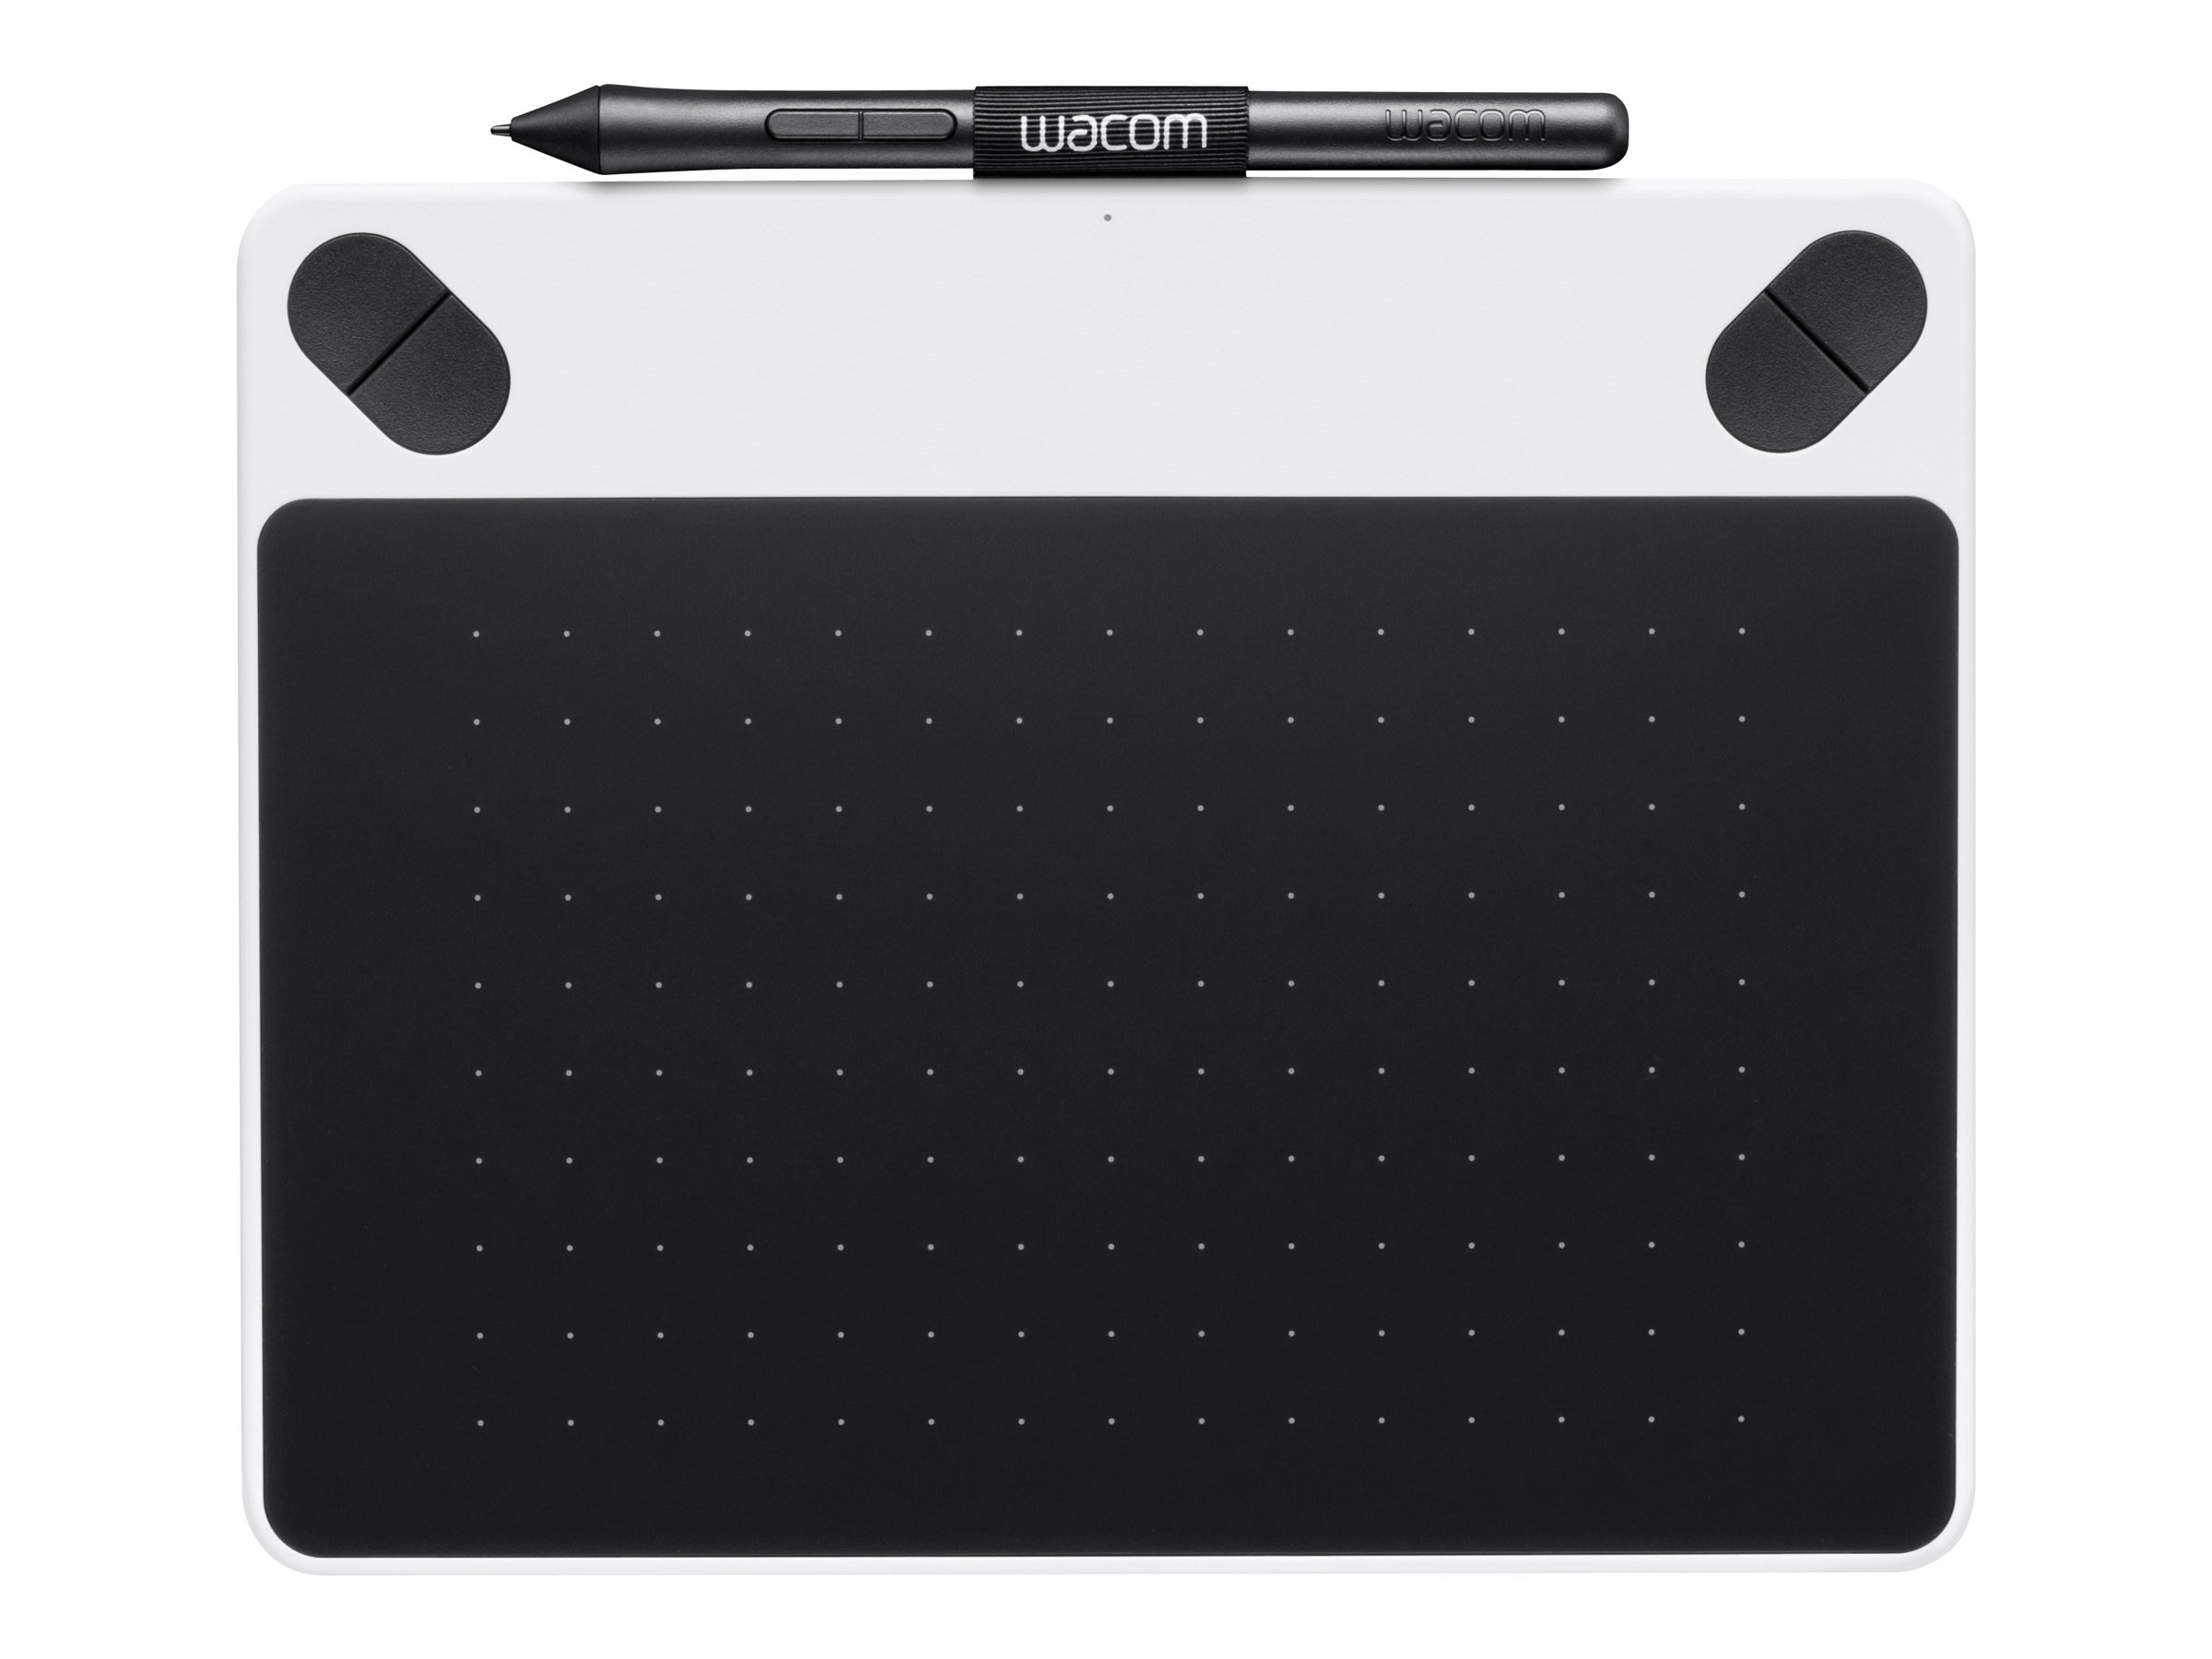 Wacom Bamboo Spark with Snap-fit for iPad Air 2, CDS600C, 30678761, Carrying Cases - Tablets & eReaders